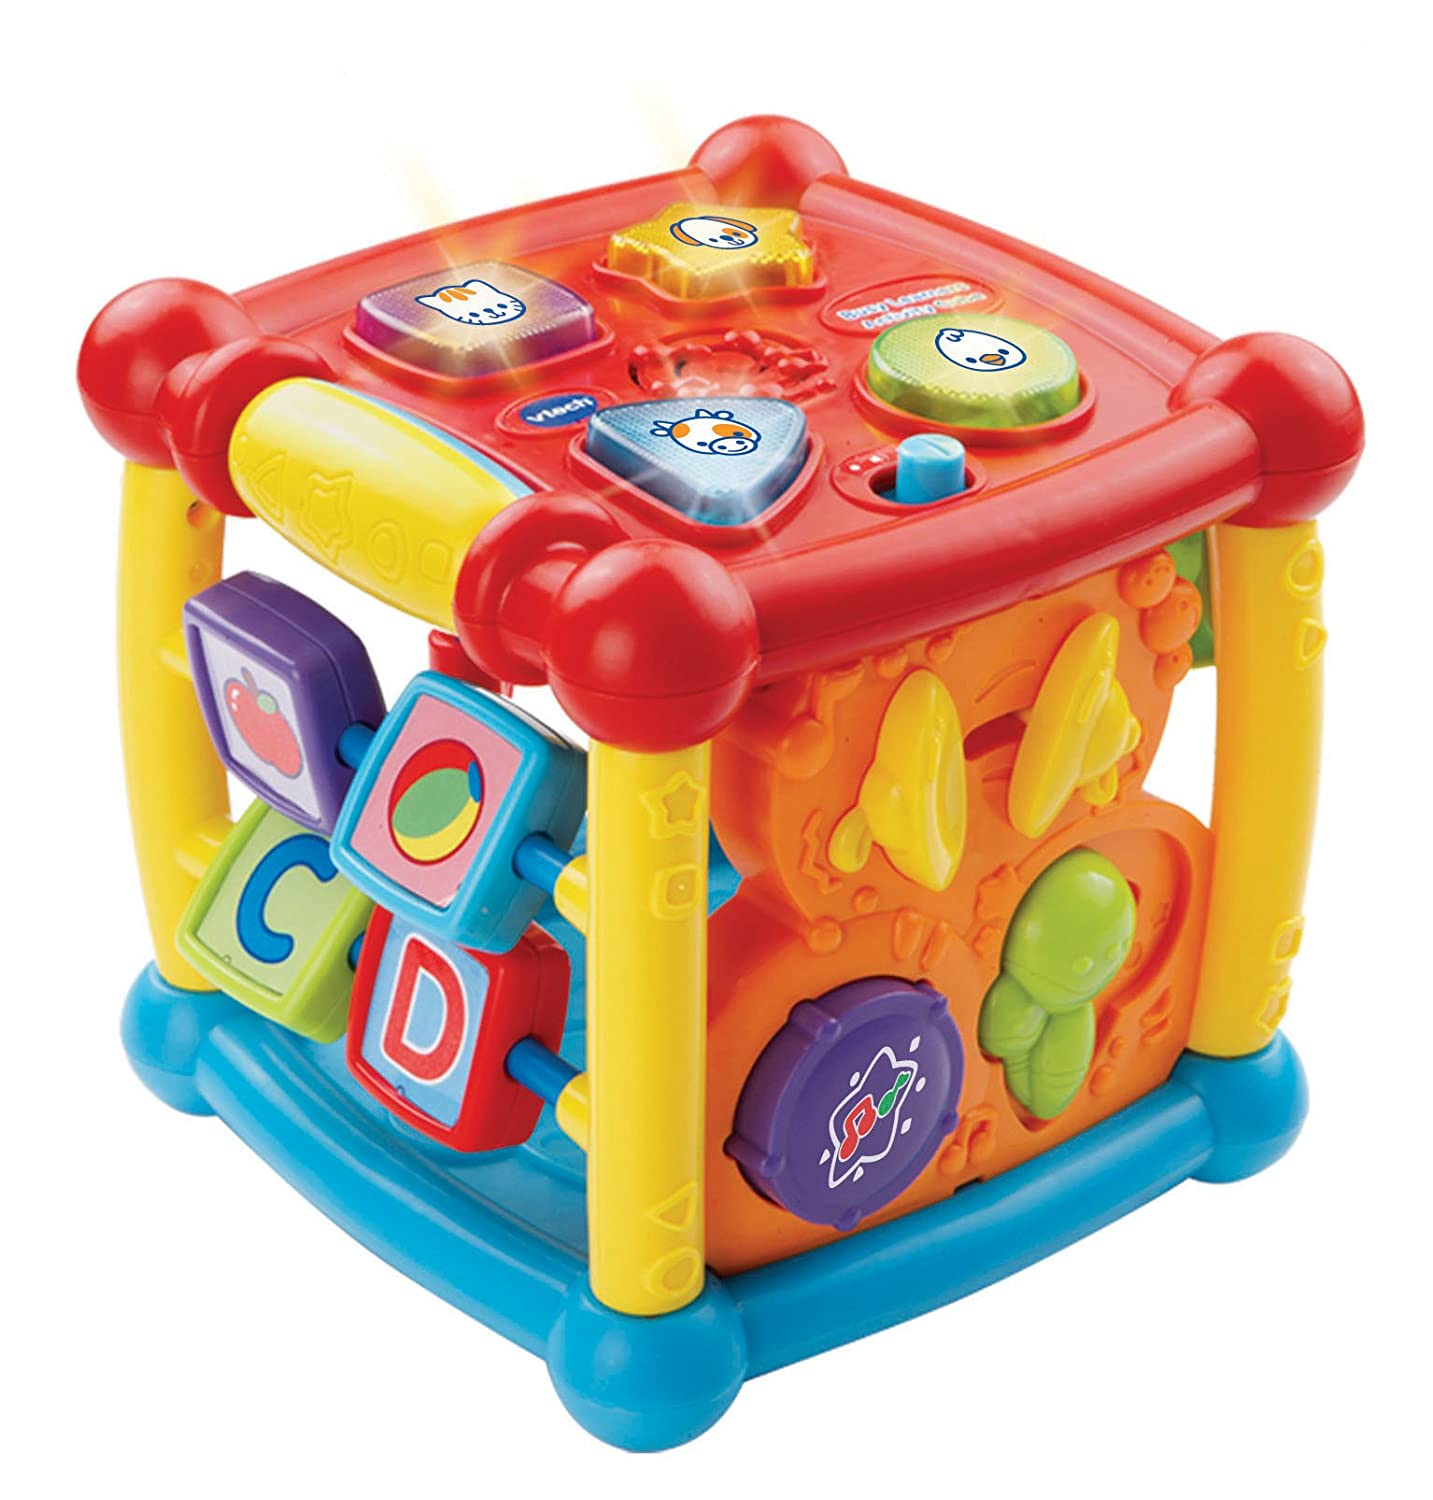 Toddler Educational Toys : Vtech baby activity center cube kids learning toys animal